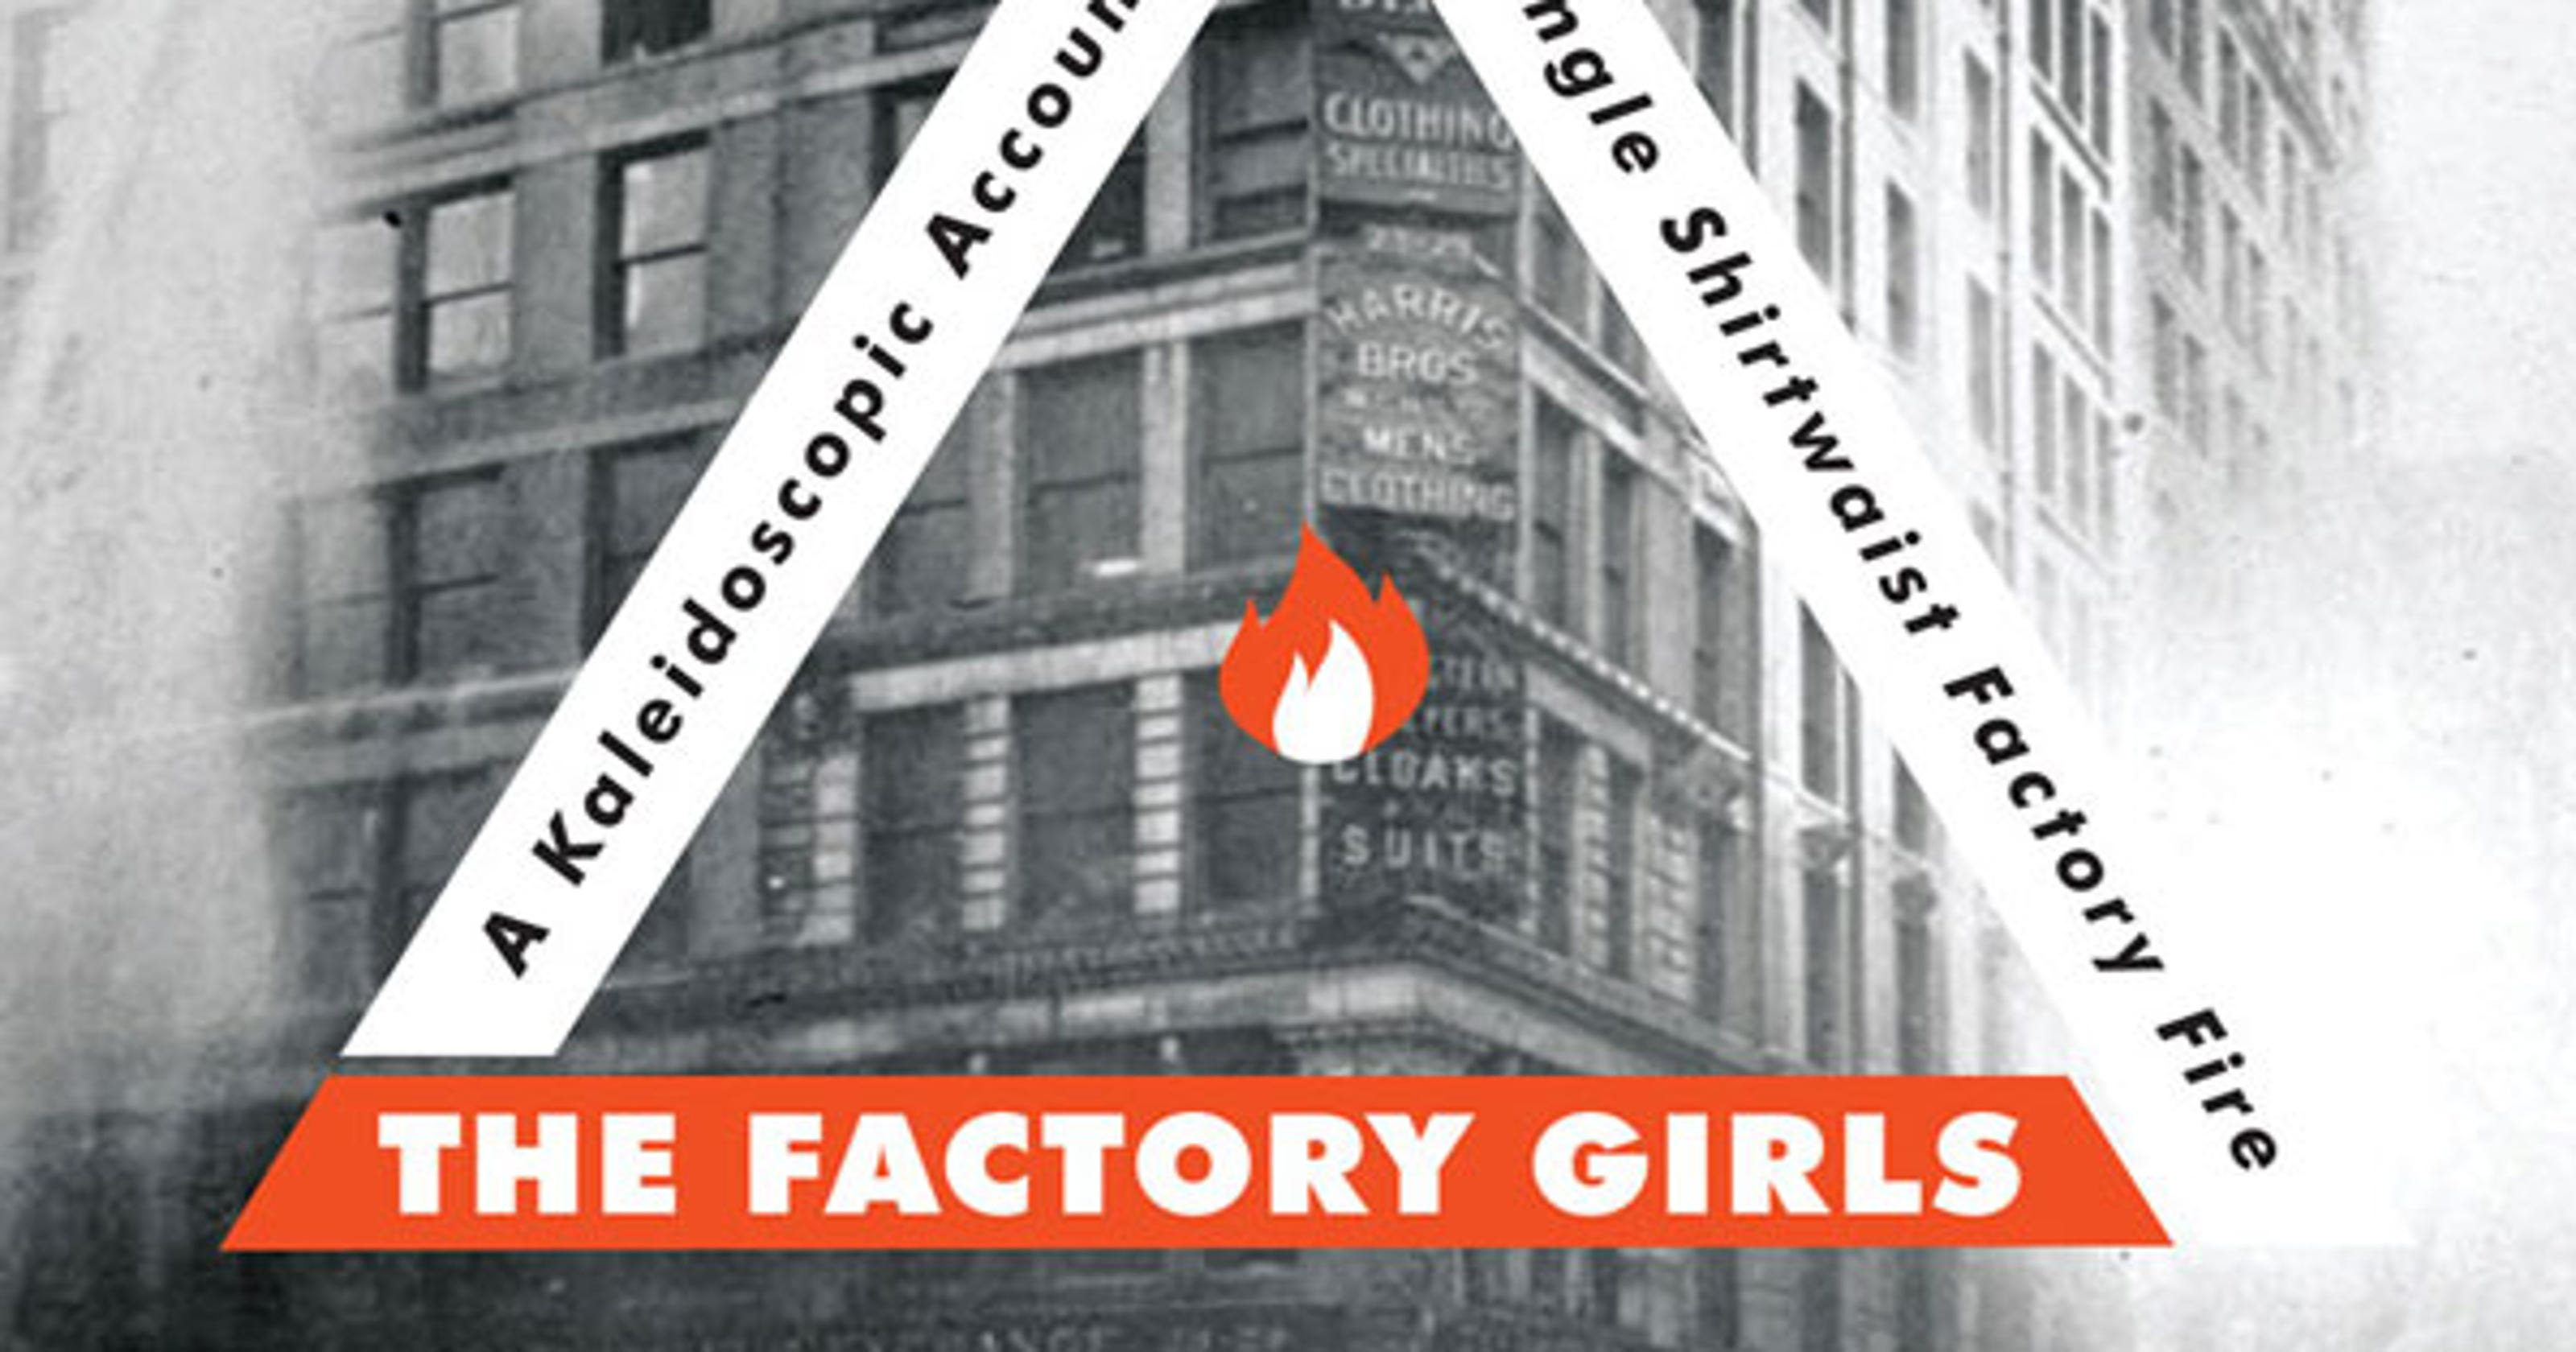 Factory Girls' recalls the horrific Triangle Shirtwaist fire